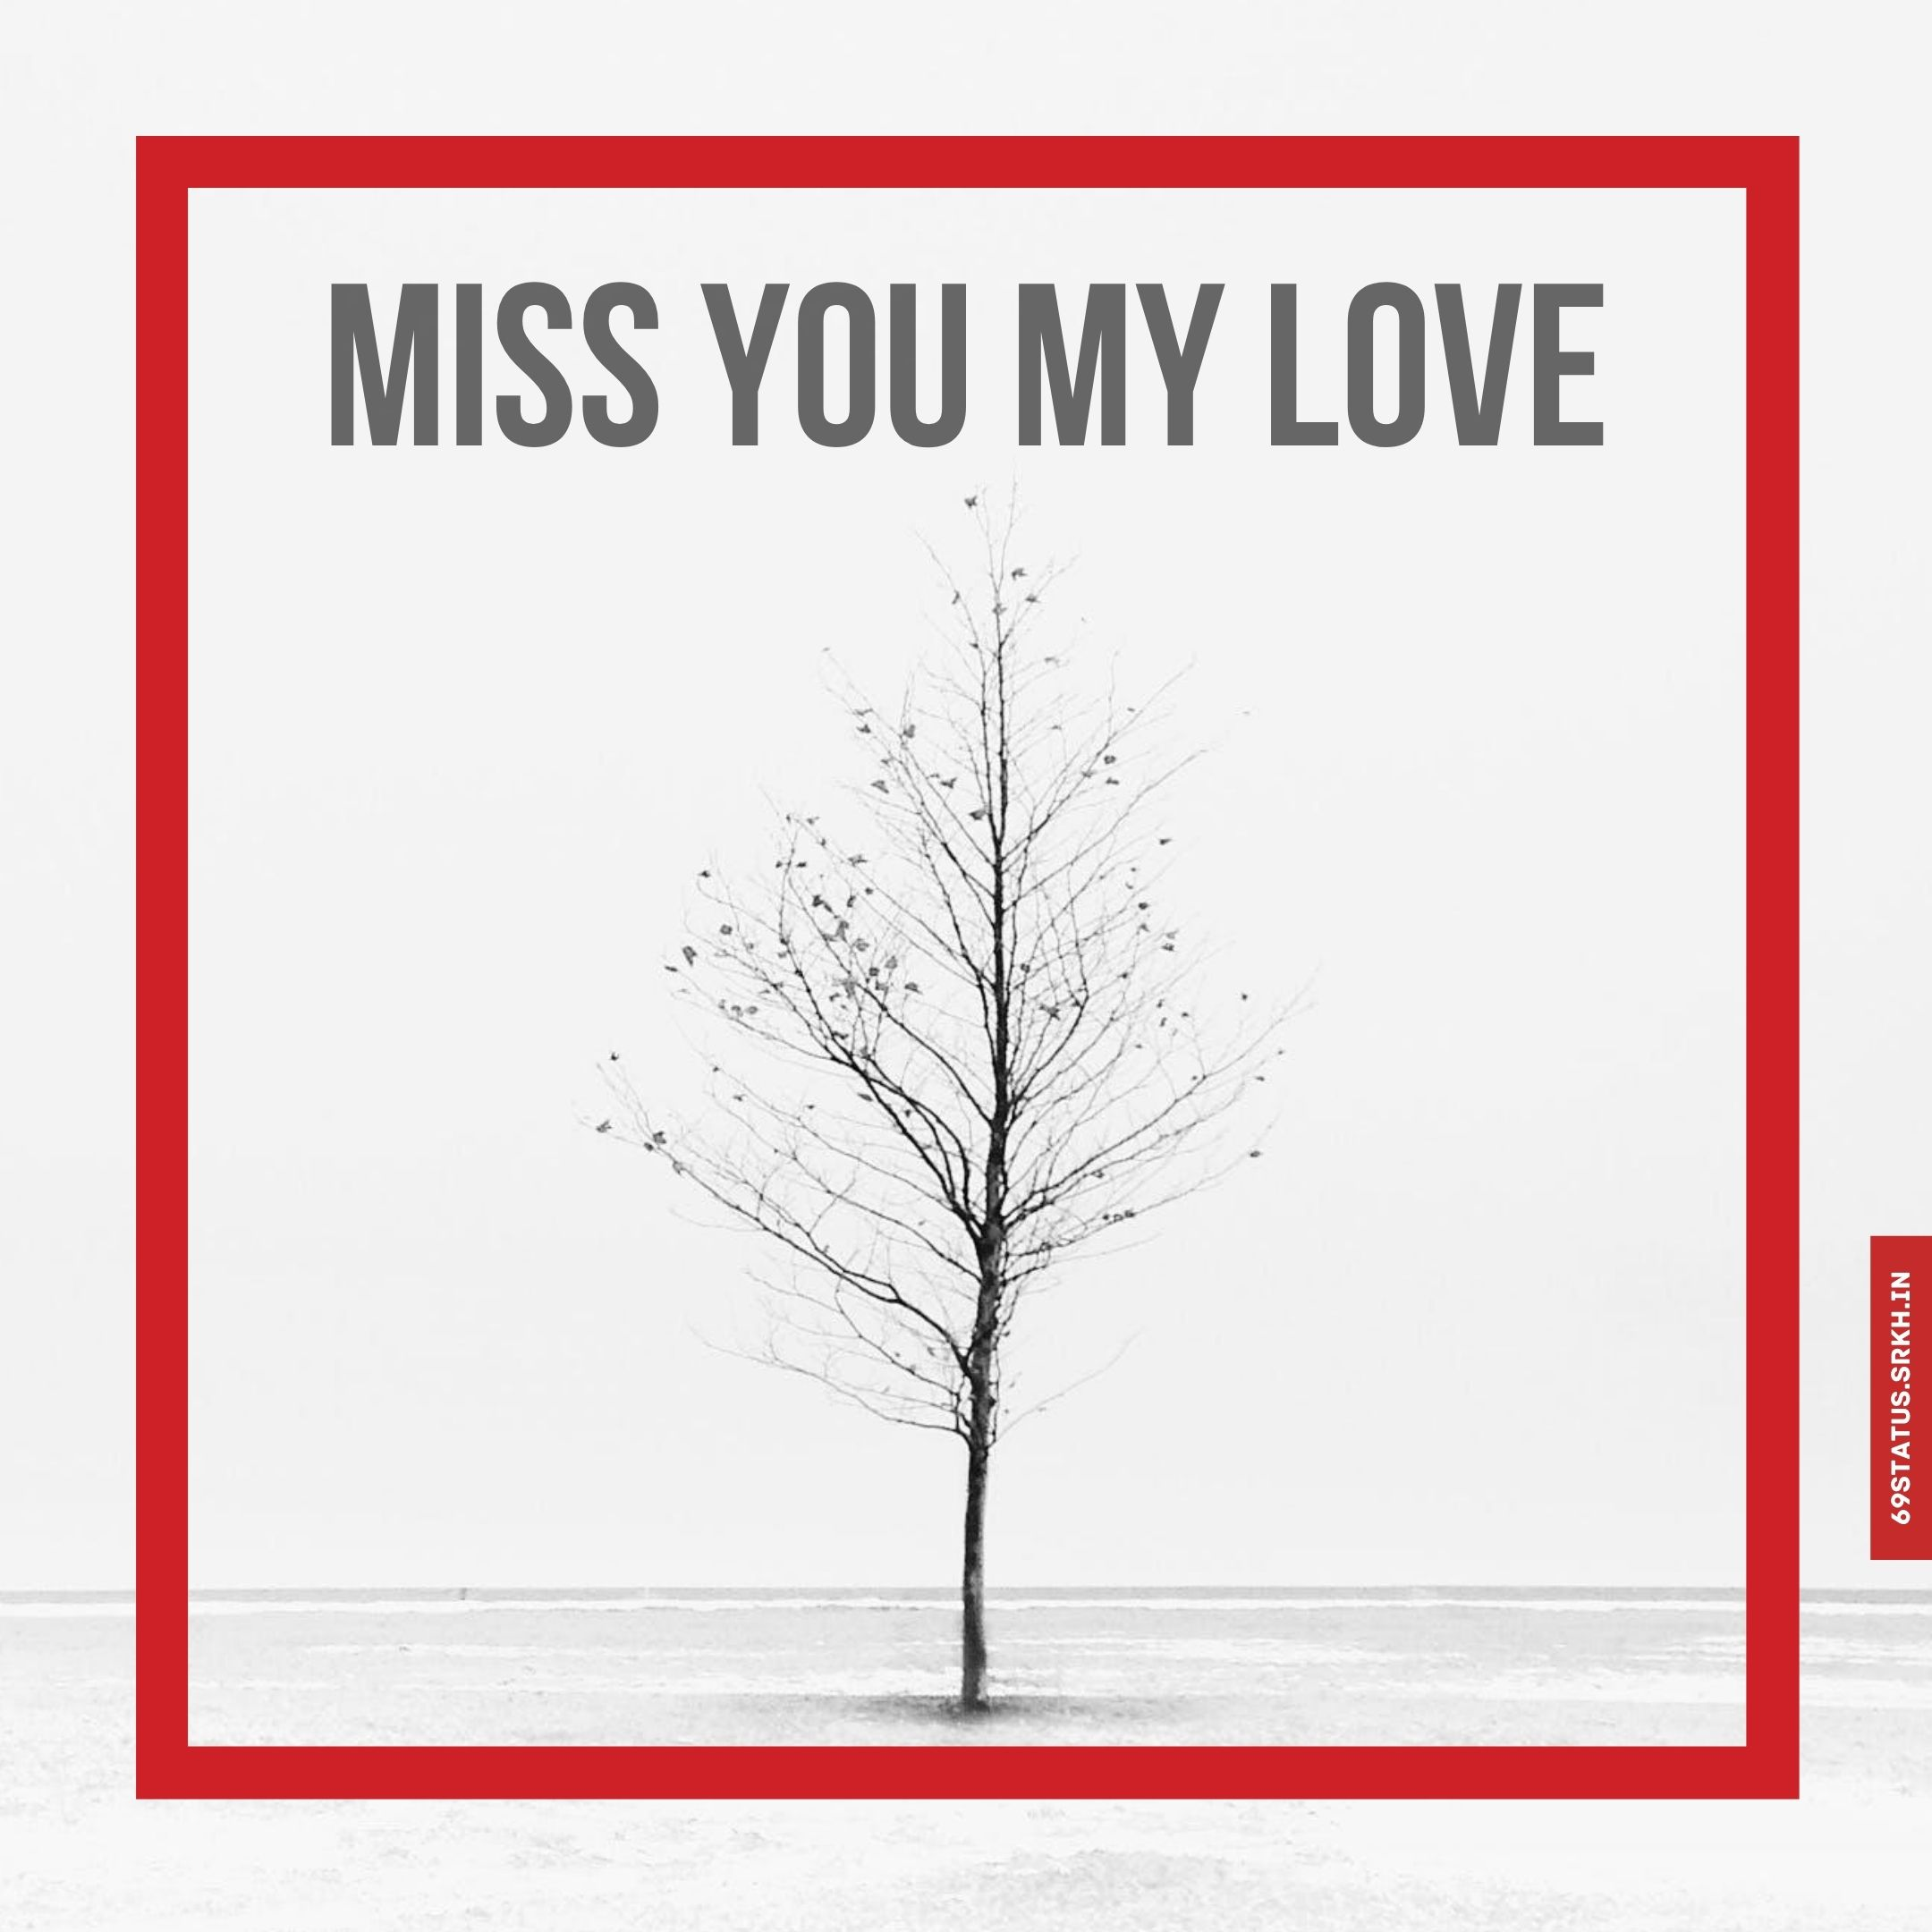 Miss you my love images full HD free download.